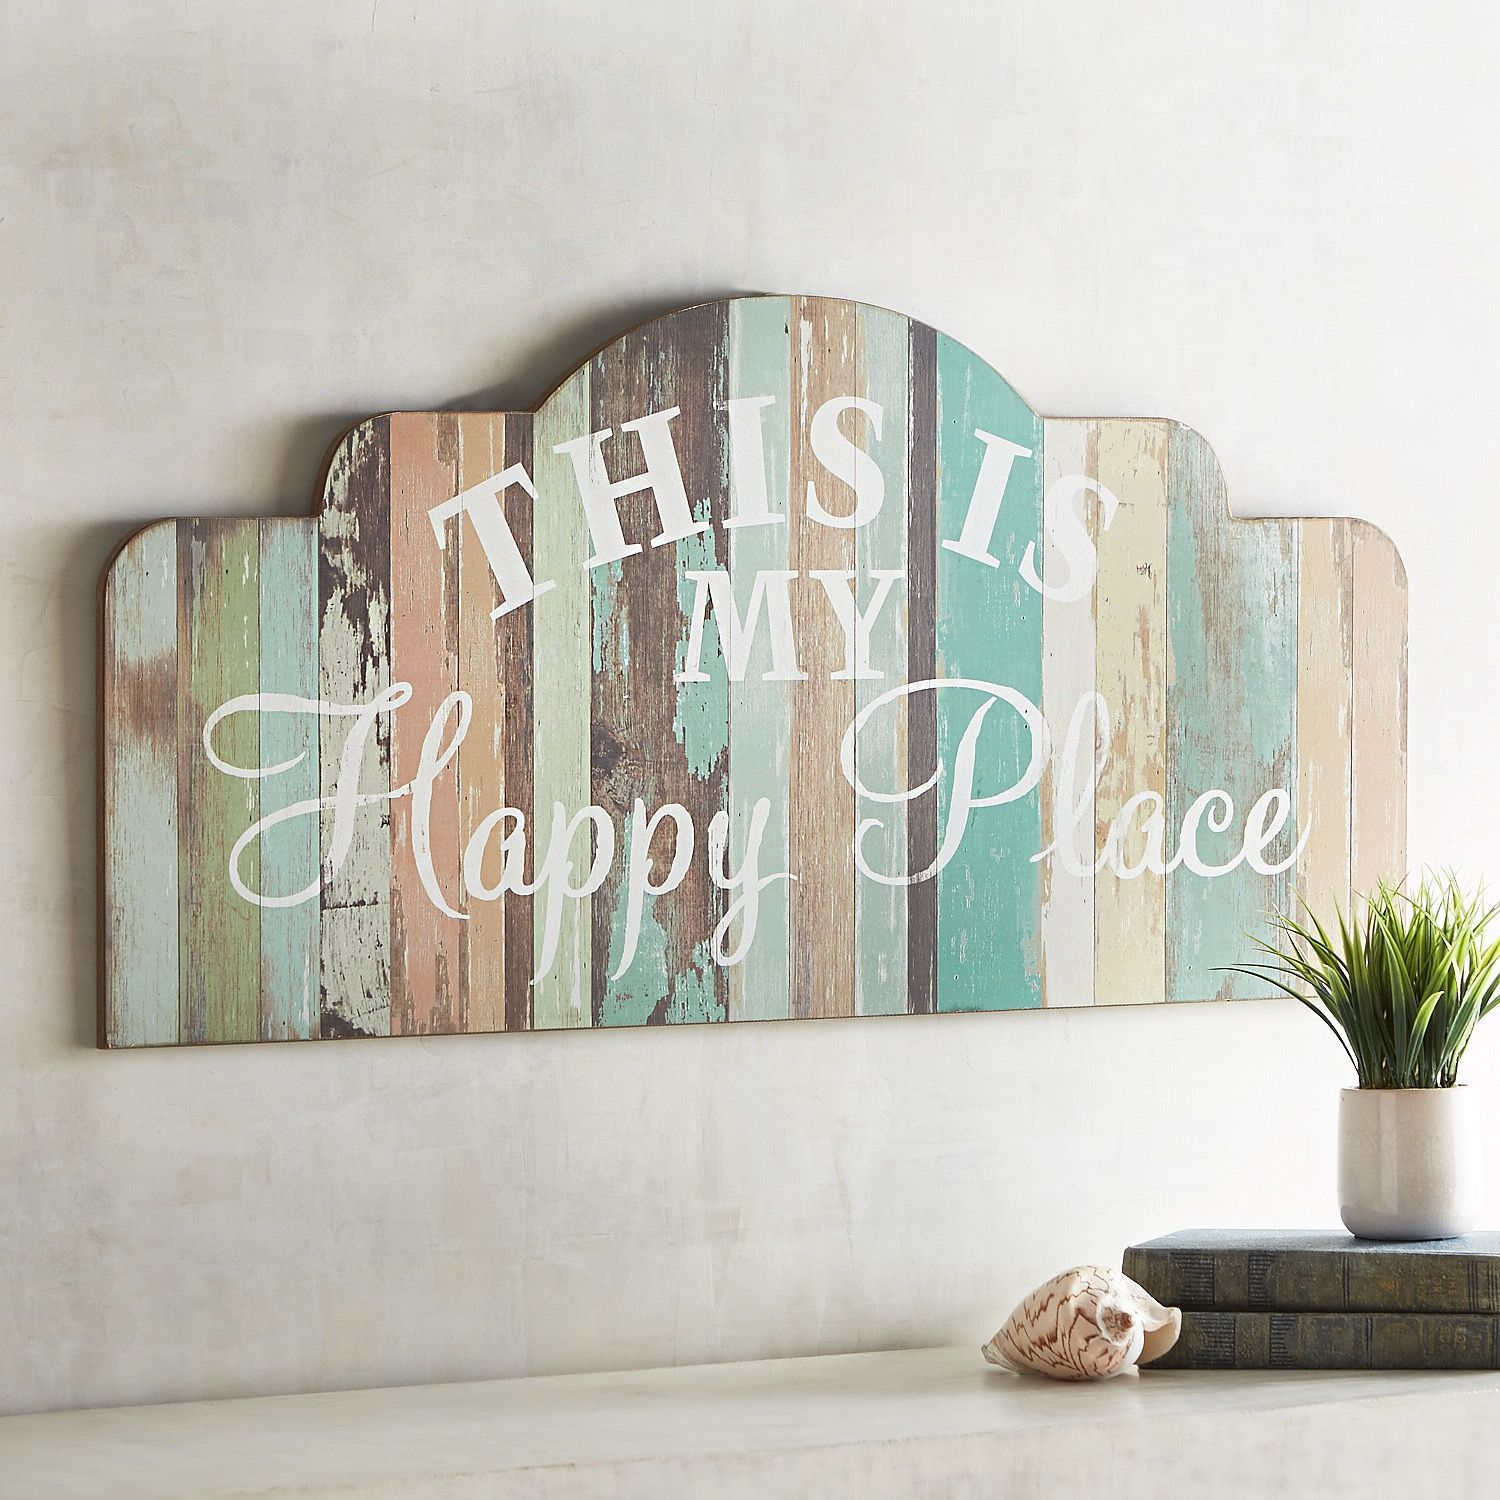 This Is My Happy Place Wall Decor Fall Wall Decor Shabby Chic Wall Decor Diy Wall Decor